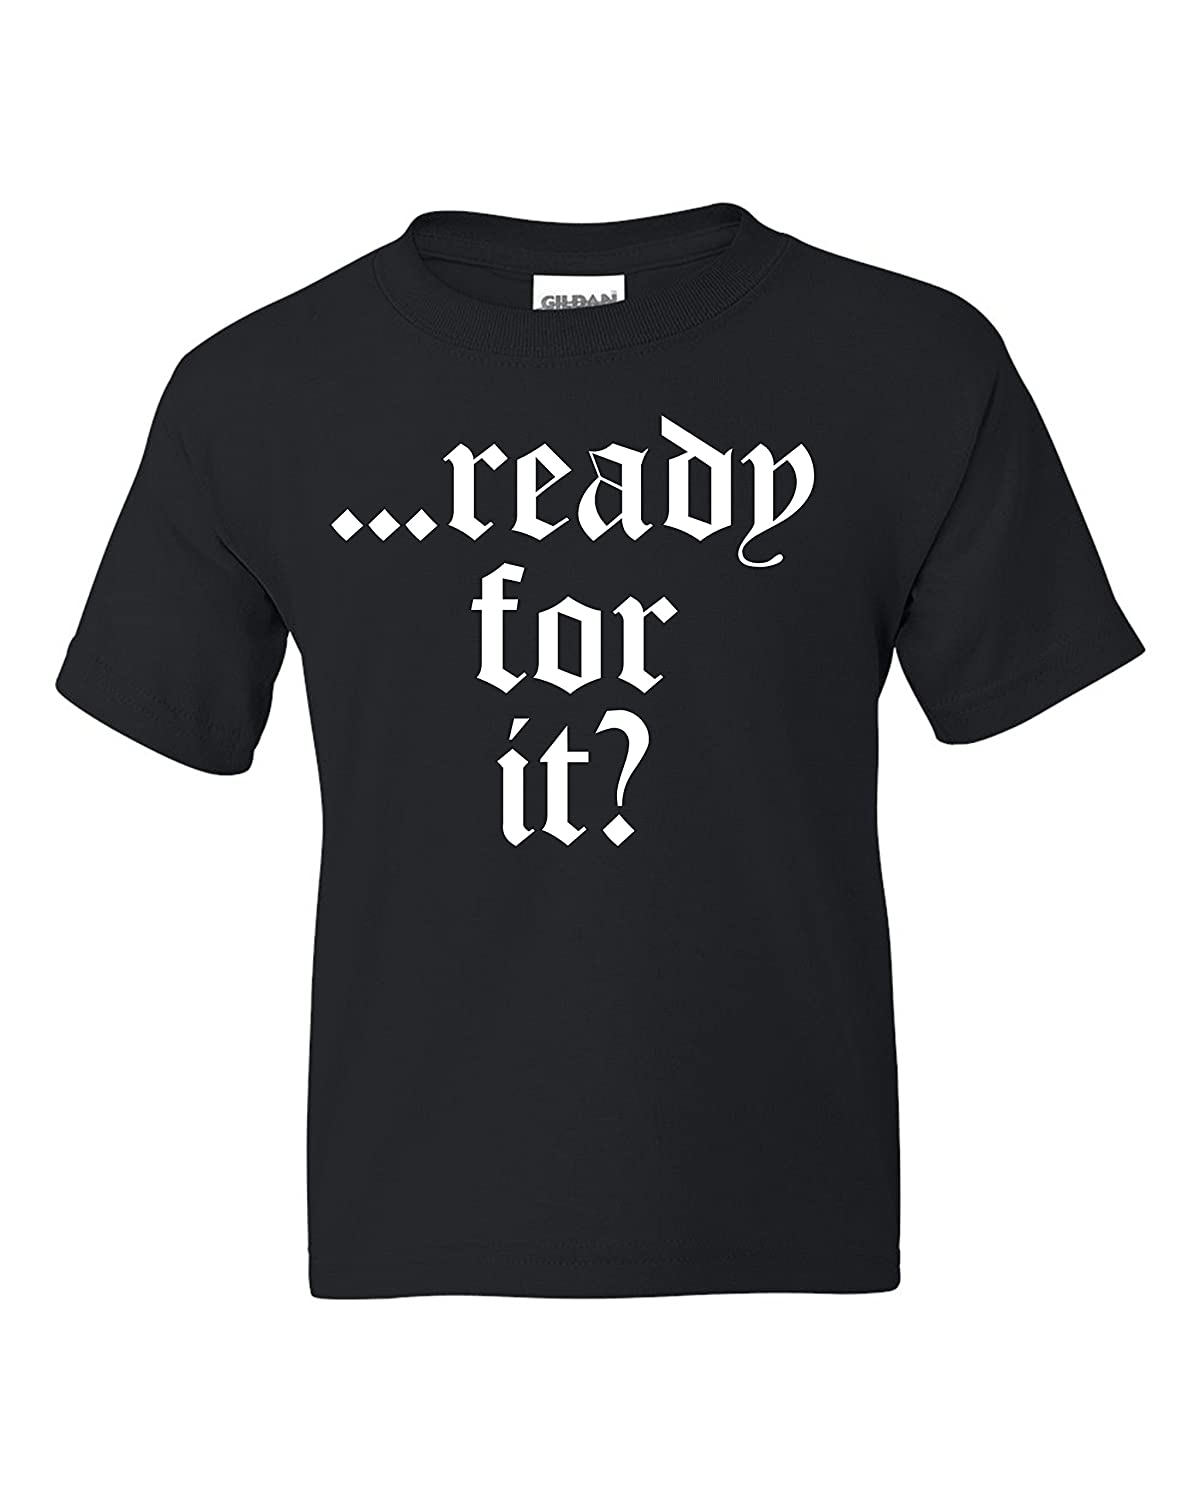 Freedoms Ready For It Unisex 1141 Shirts